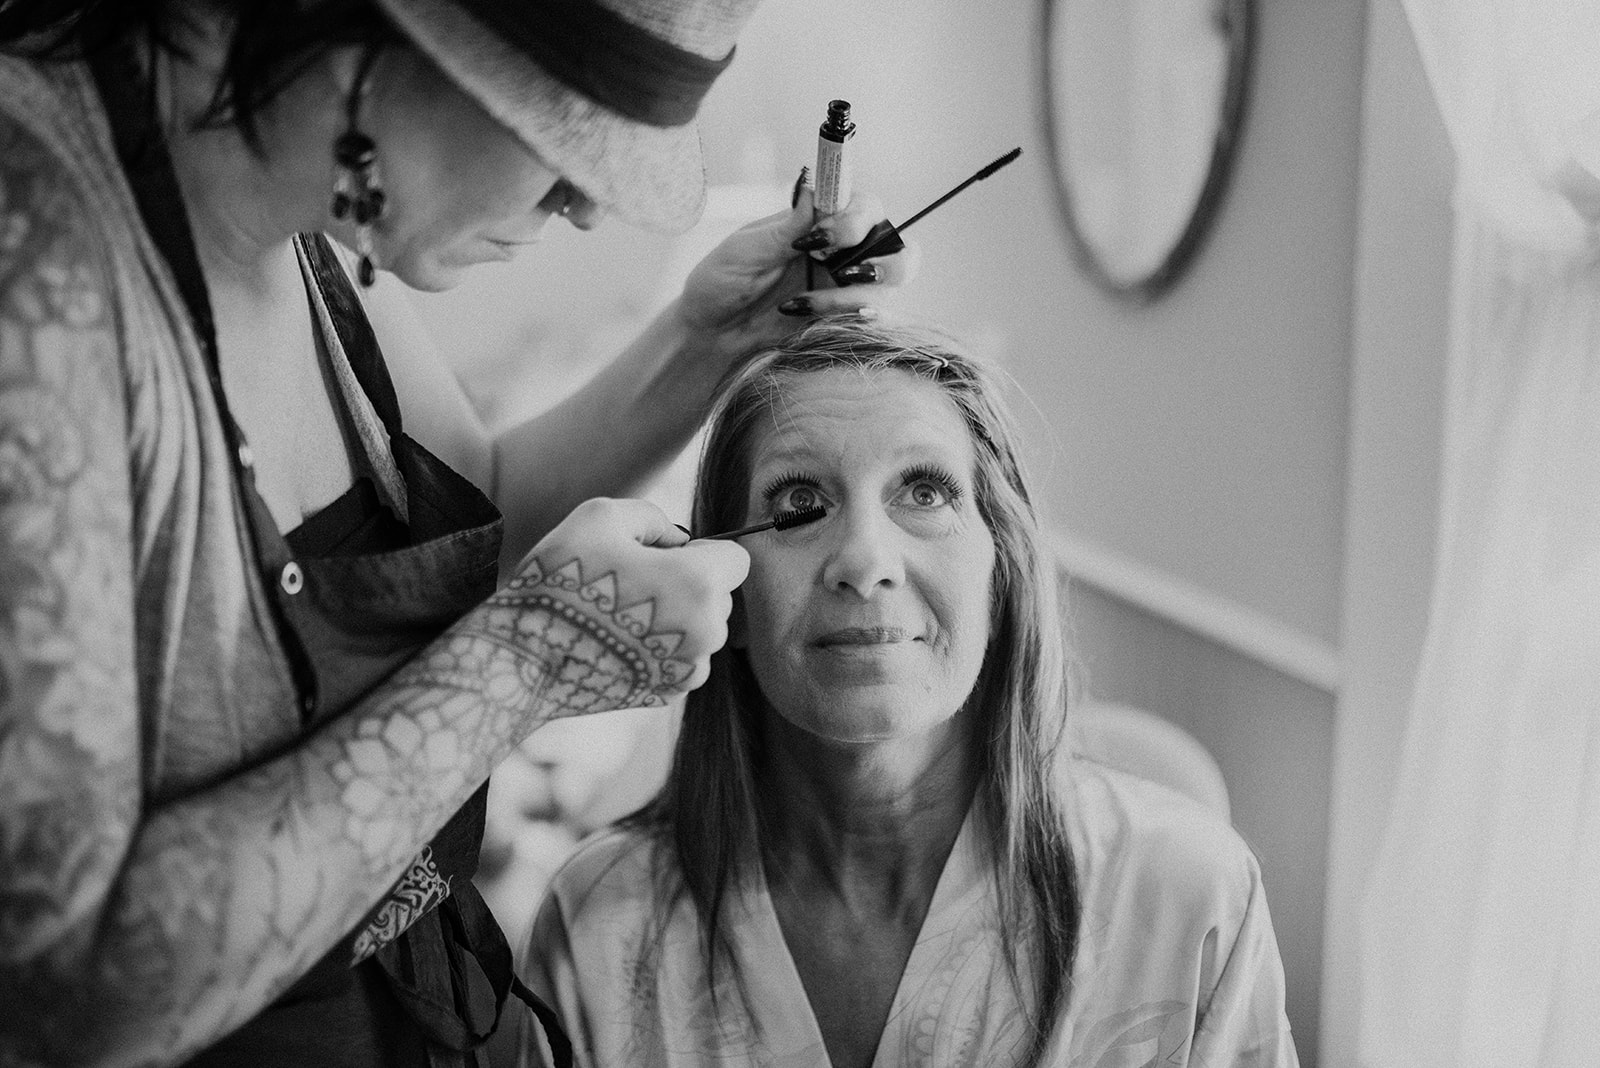 overthevineswisconsinwedding_0041.jpg